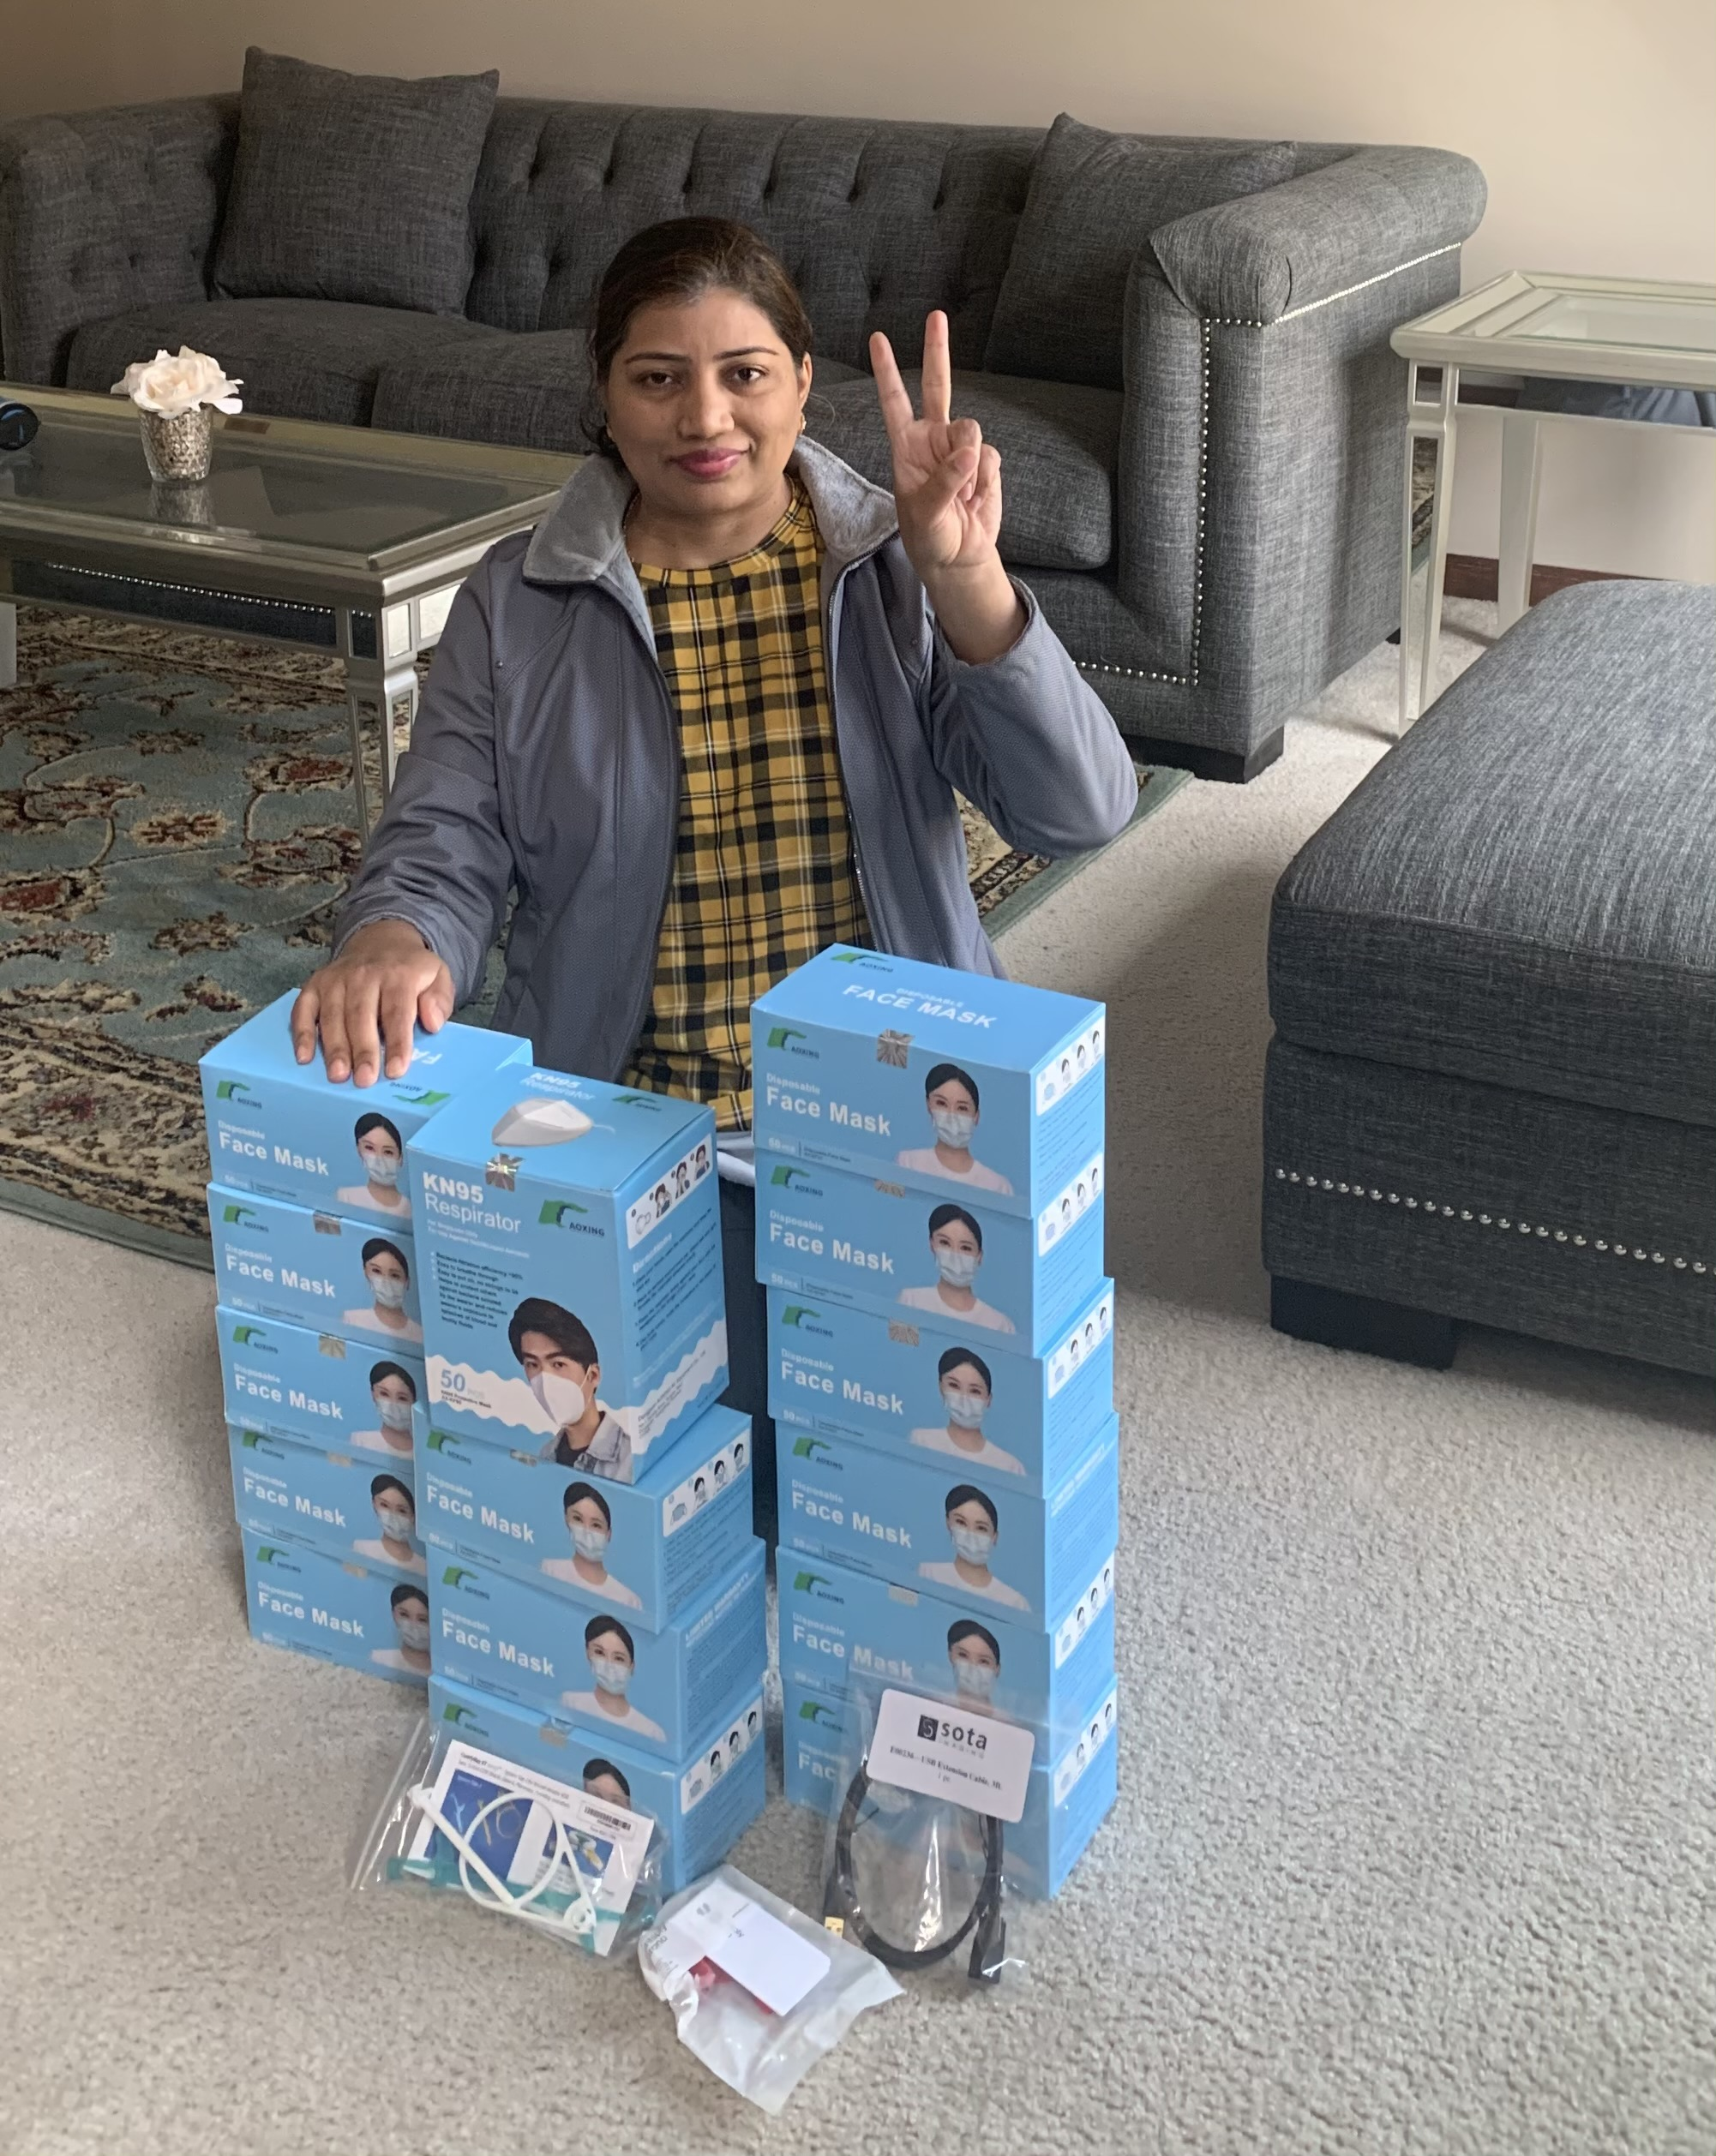 SOTA Imaging customer Dr. Irfana Ilyas won $500 in dental supplies from the new SOTA Store online.